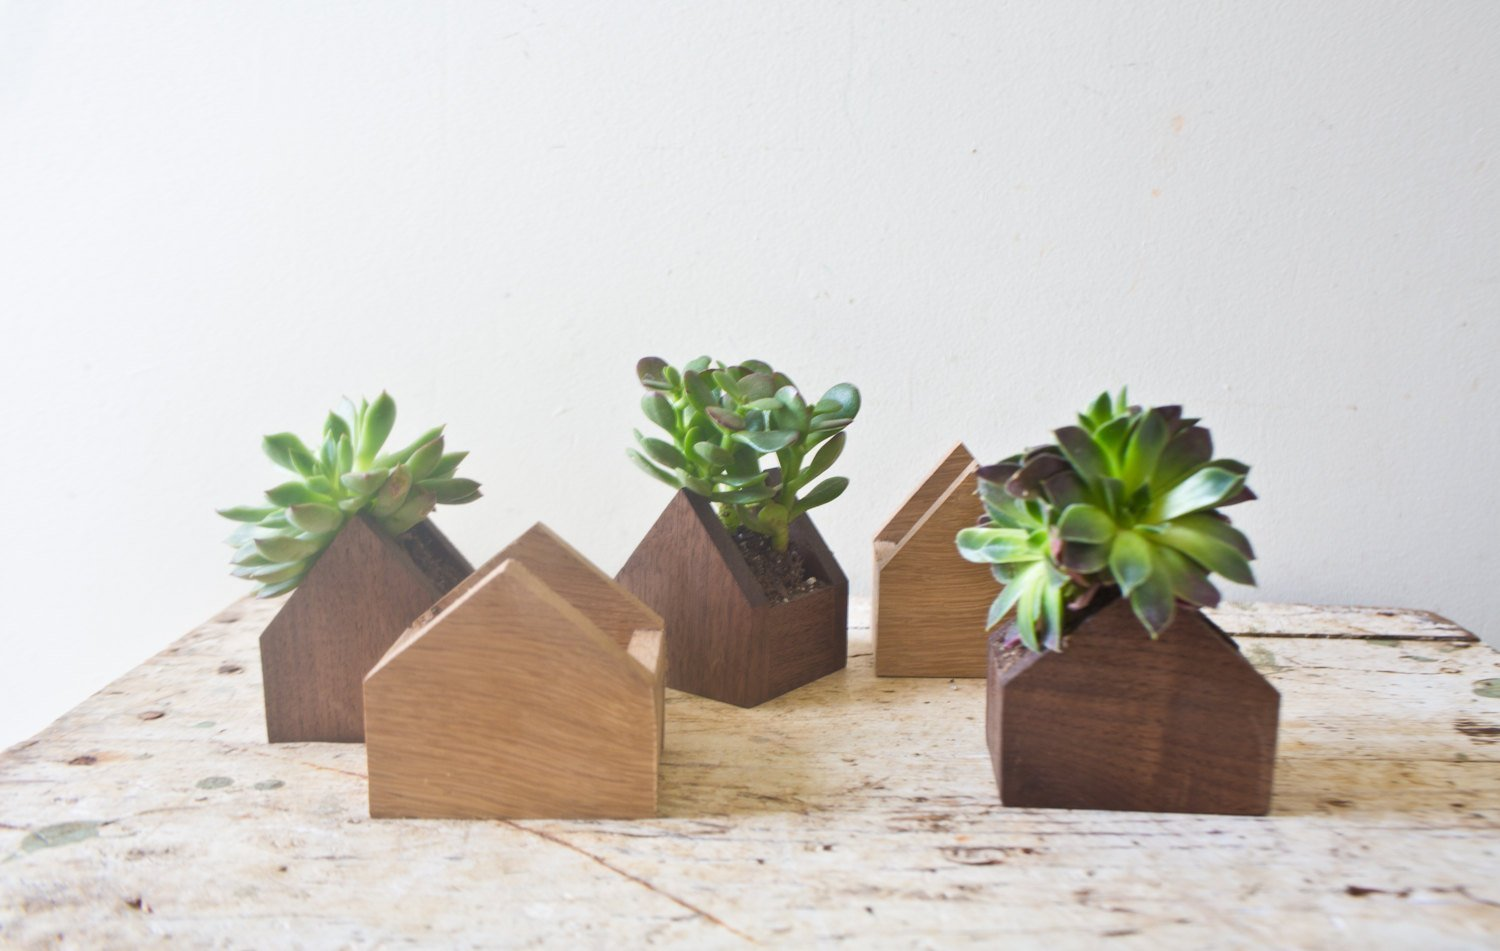 Amazon.com: Tiny House Shaped Plant Box - Walnut Natural Wood Pot ...